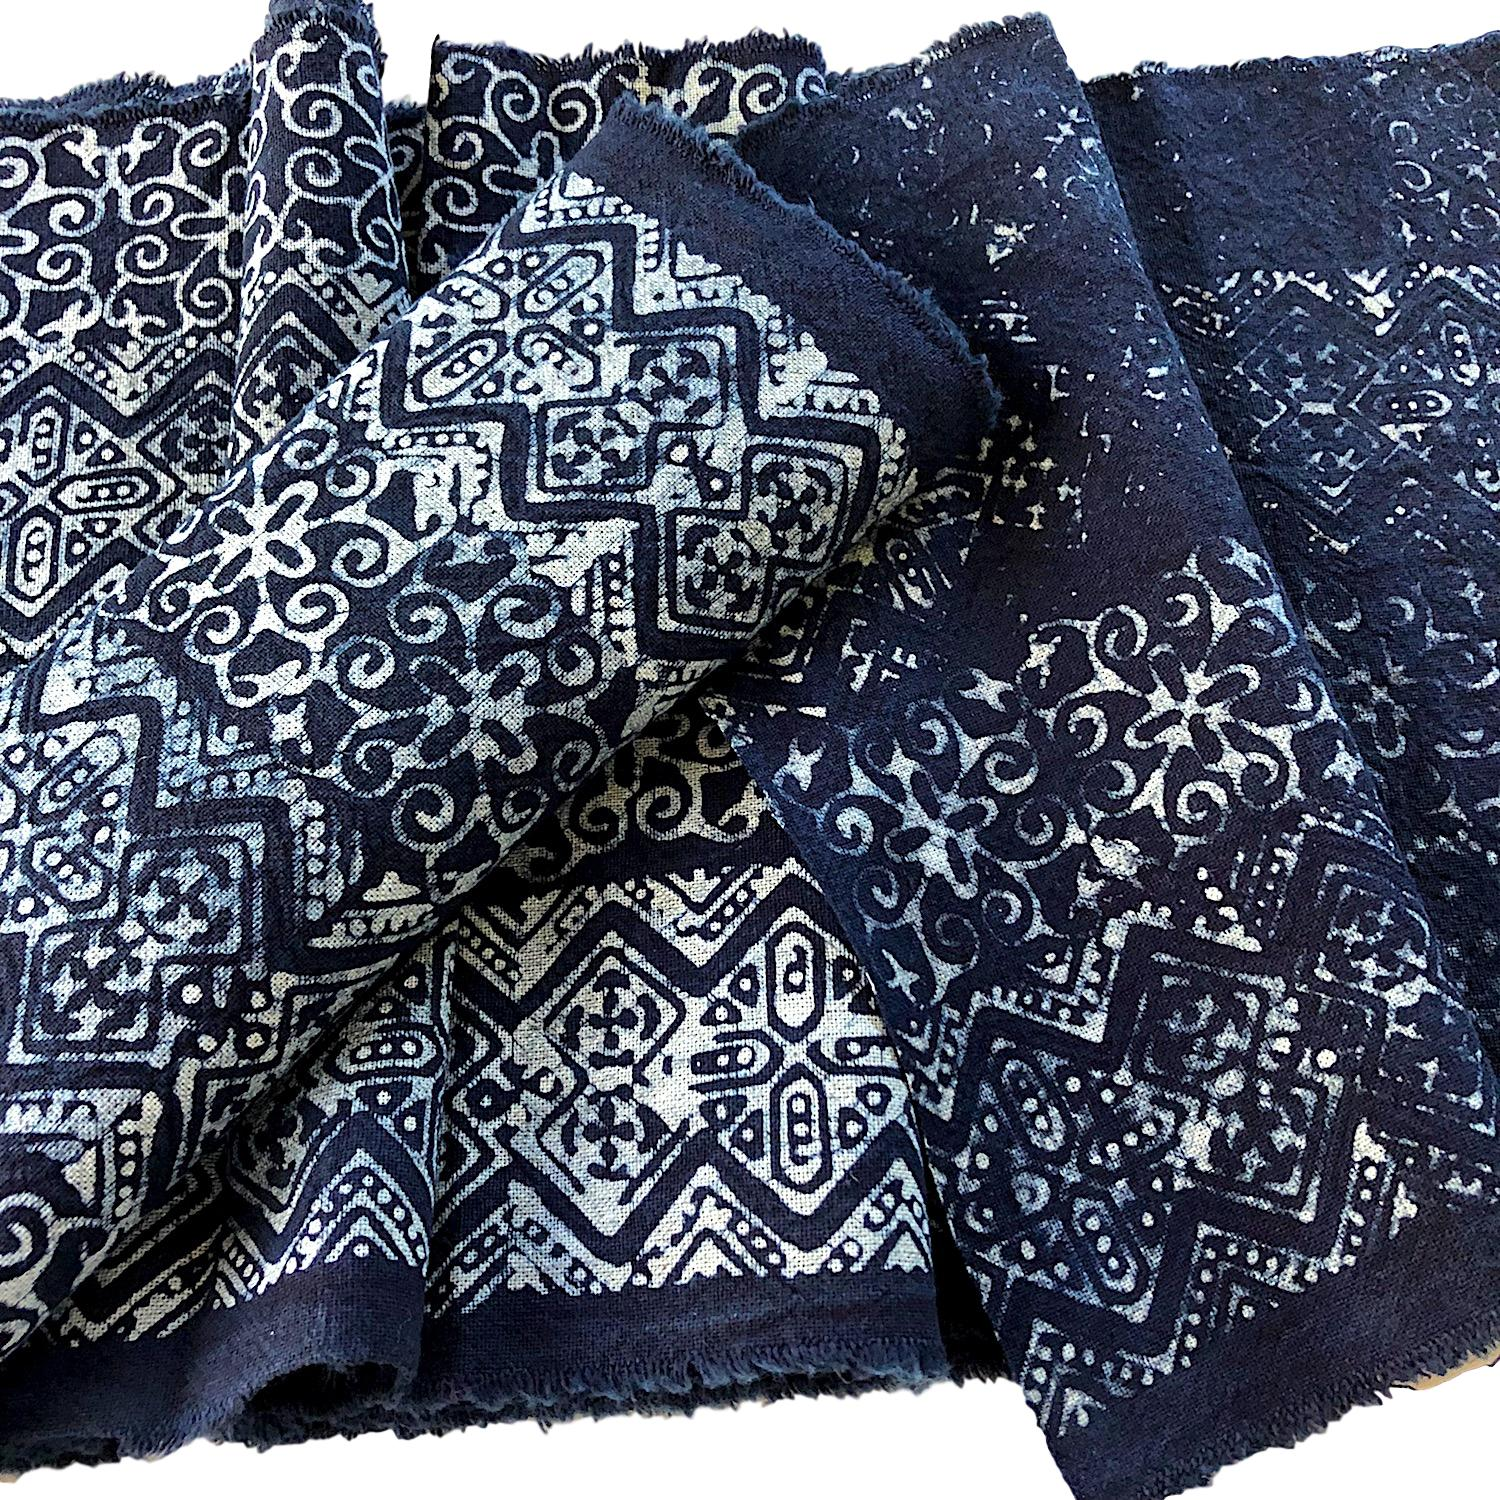 Hmong indigo decor fabric or table runner 2.5mt - Pallu Design